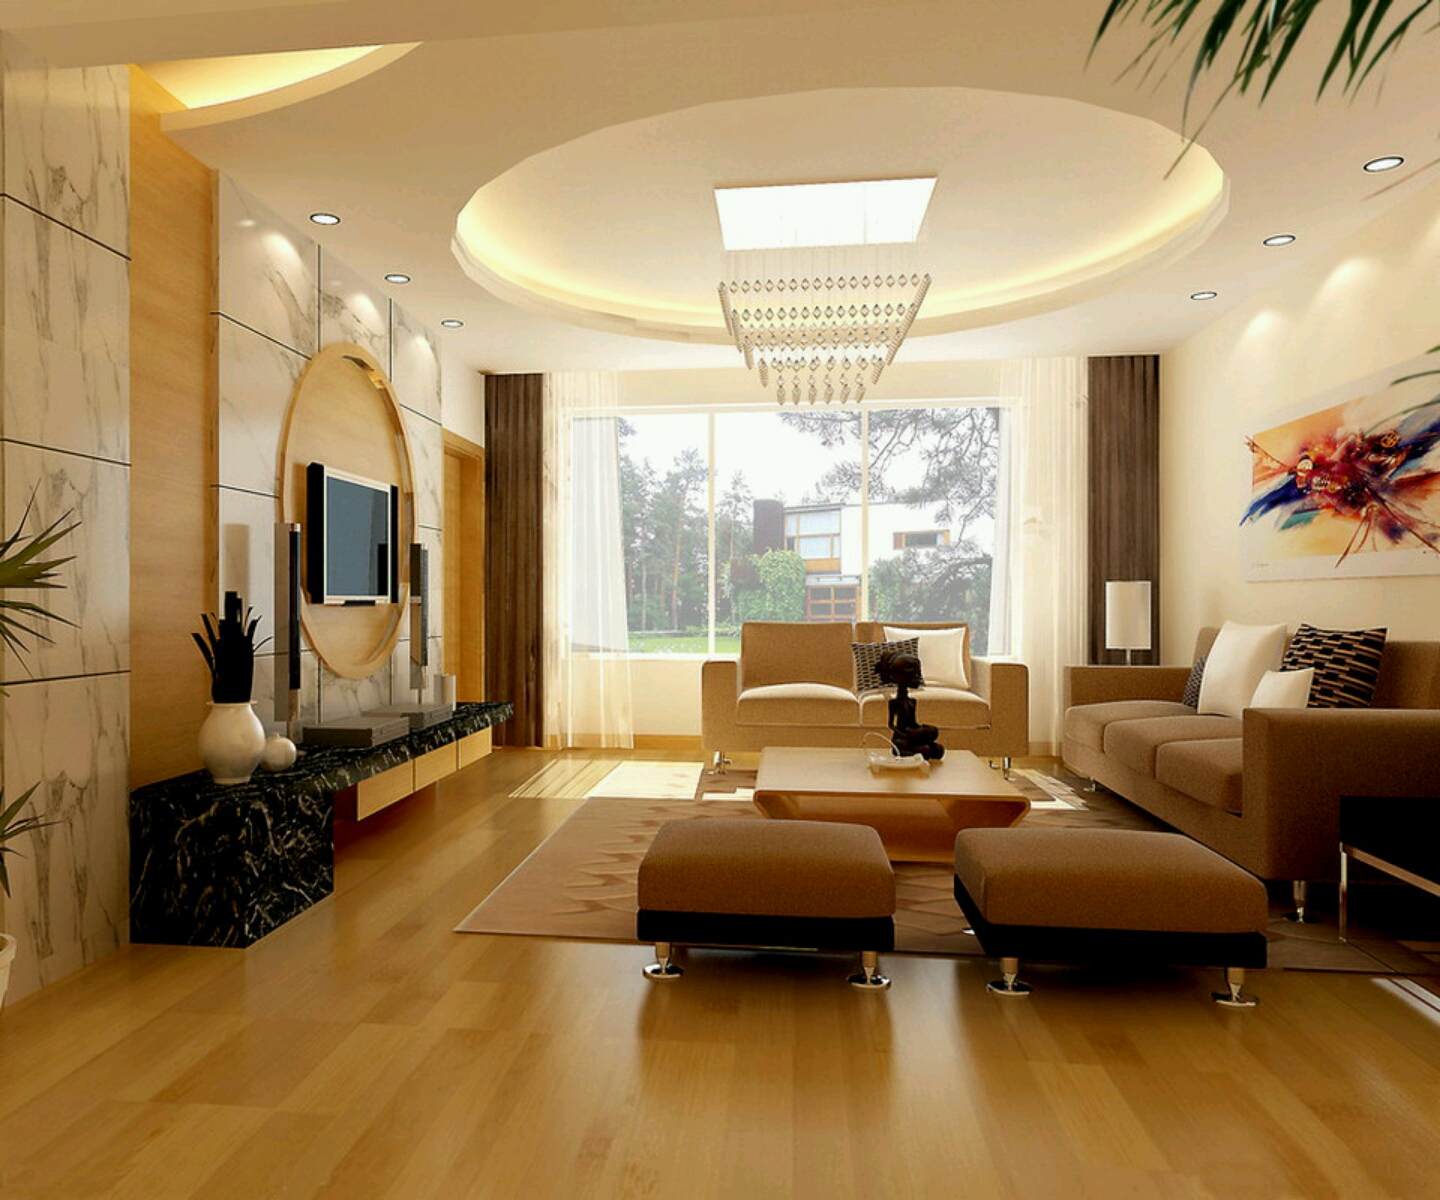 Modern interior decoration living rooms ceiling designs for Home room ideas